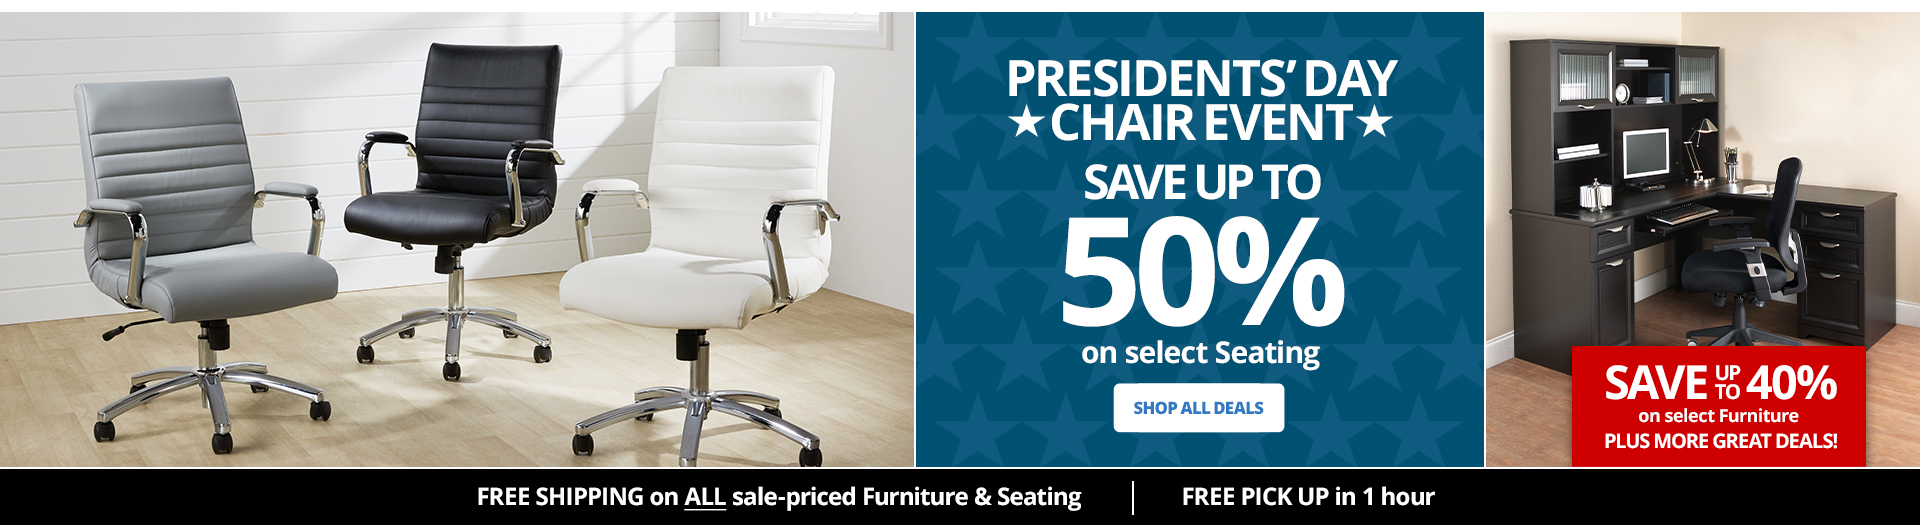 BIGGEST CHAIR EVENT and 72HR Doorbusters Save up to 50% on select Furniture & Seating